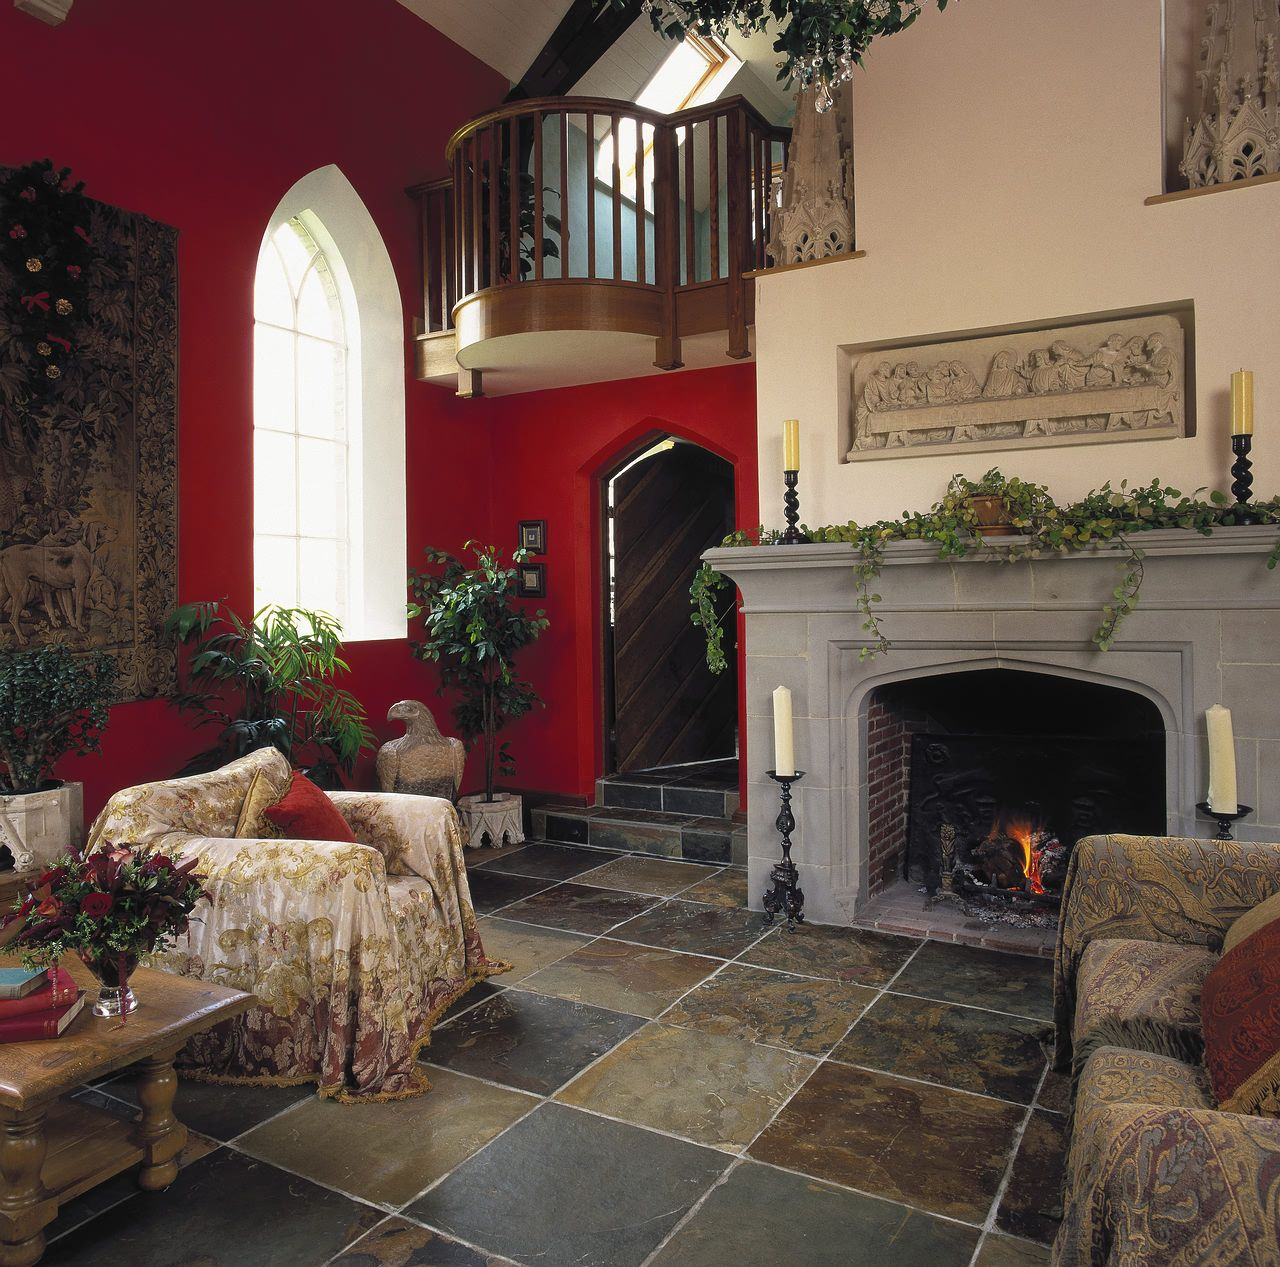 Although The Design Of This Room Could Be Called Gothic, It Has